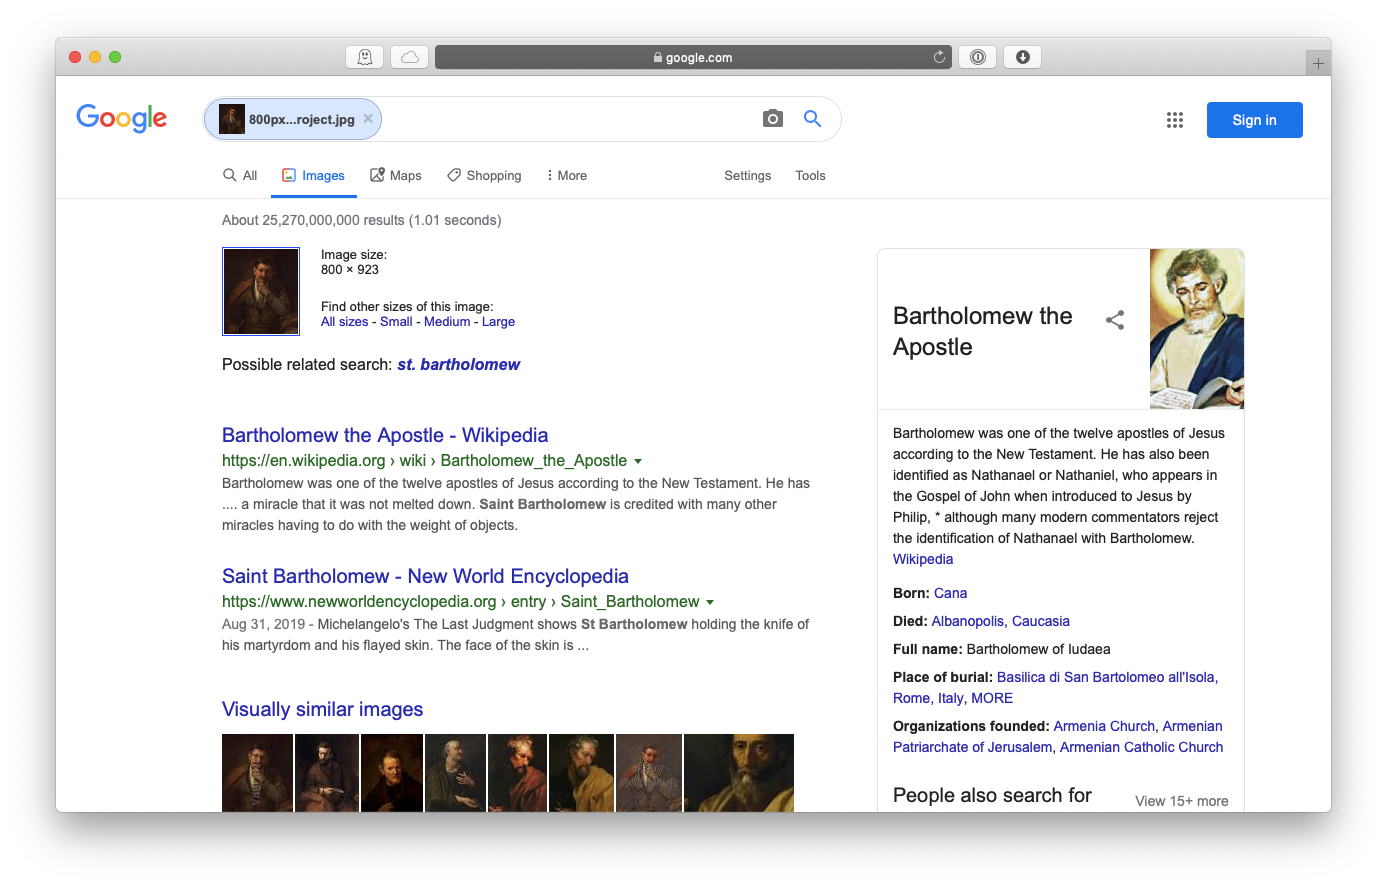 Google reversed image search